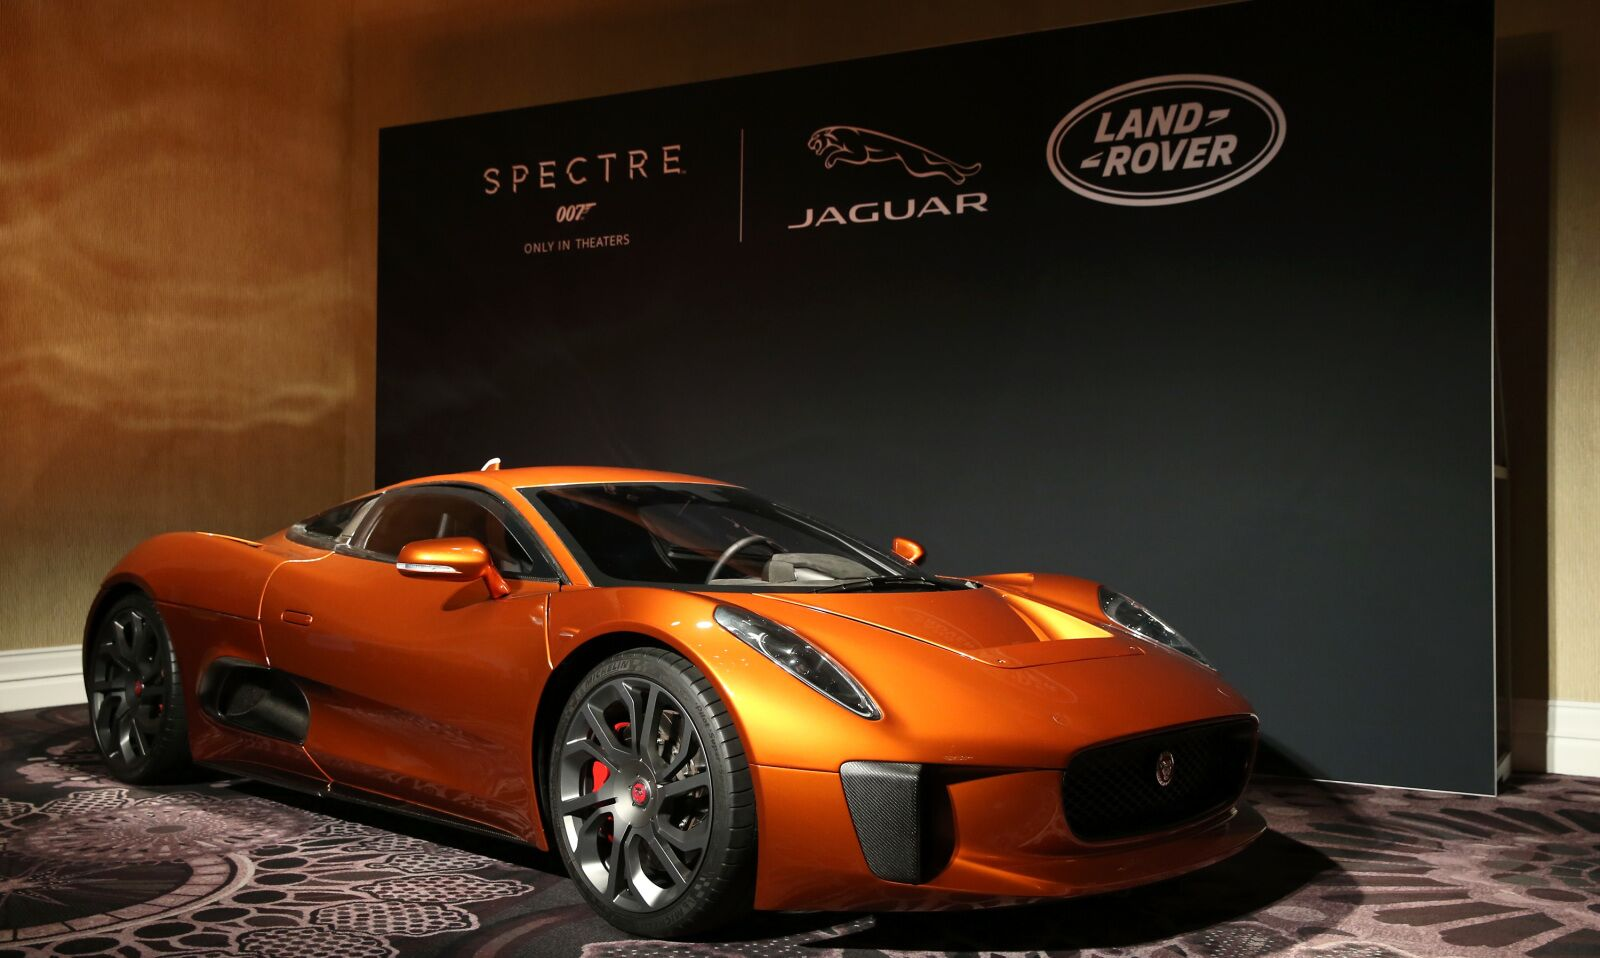 You Could Own a Bond Villain's Ride: Jaguar C-X75 to be Auctioned by RM Sotheby's